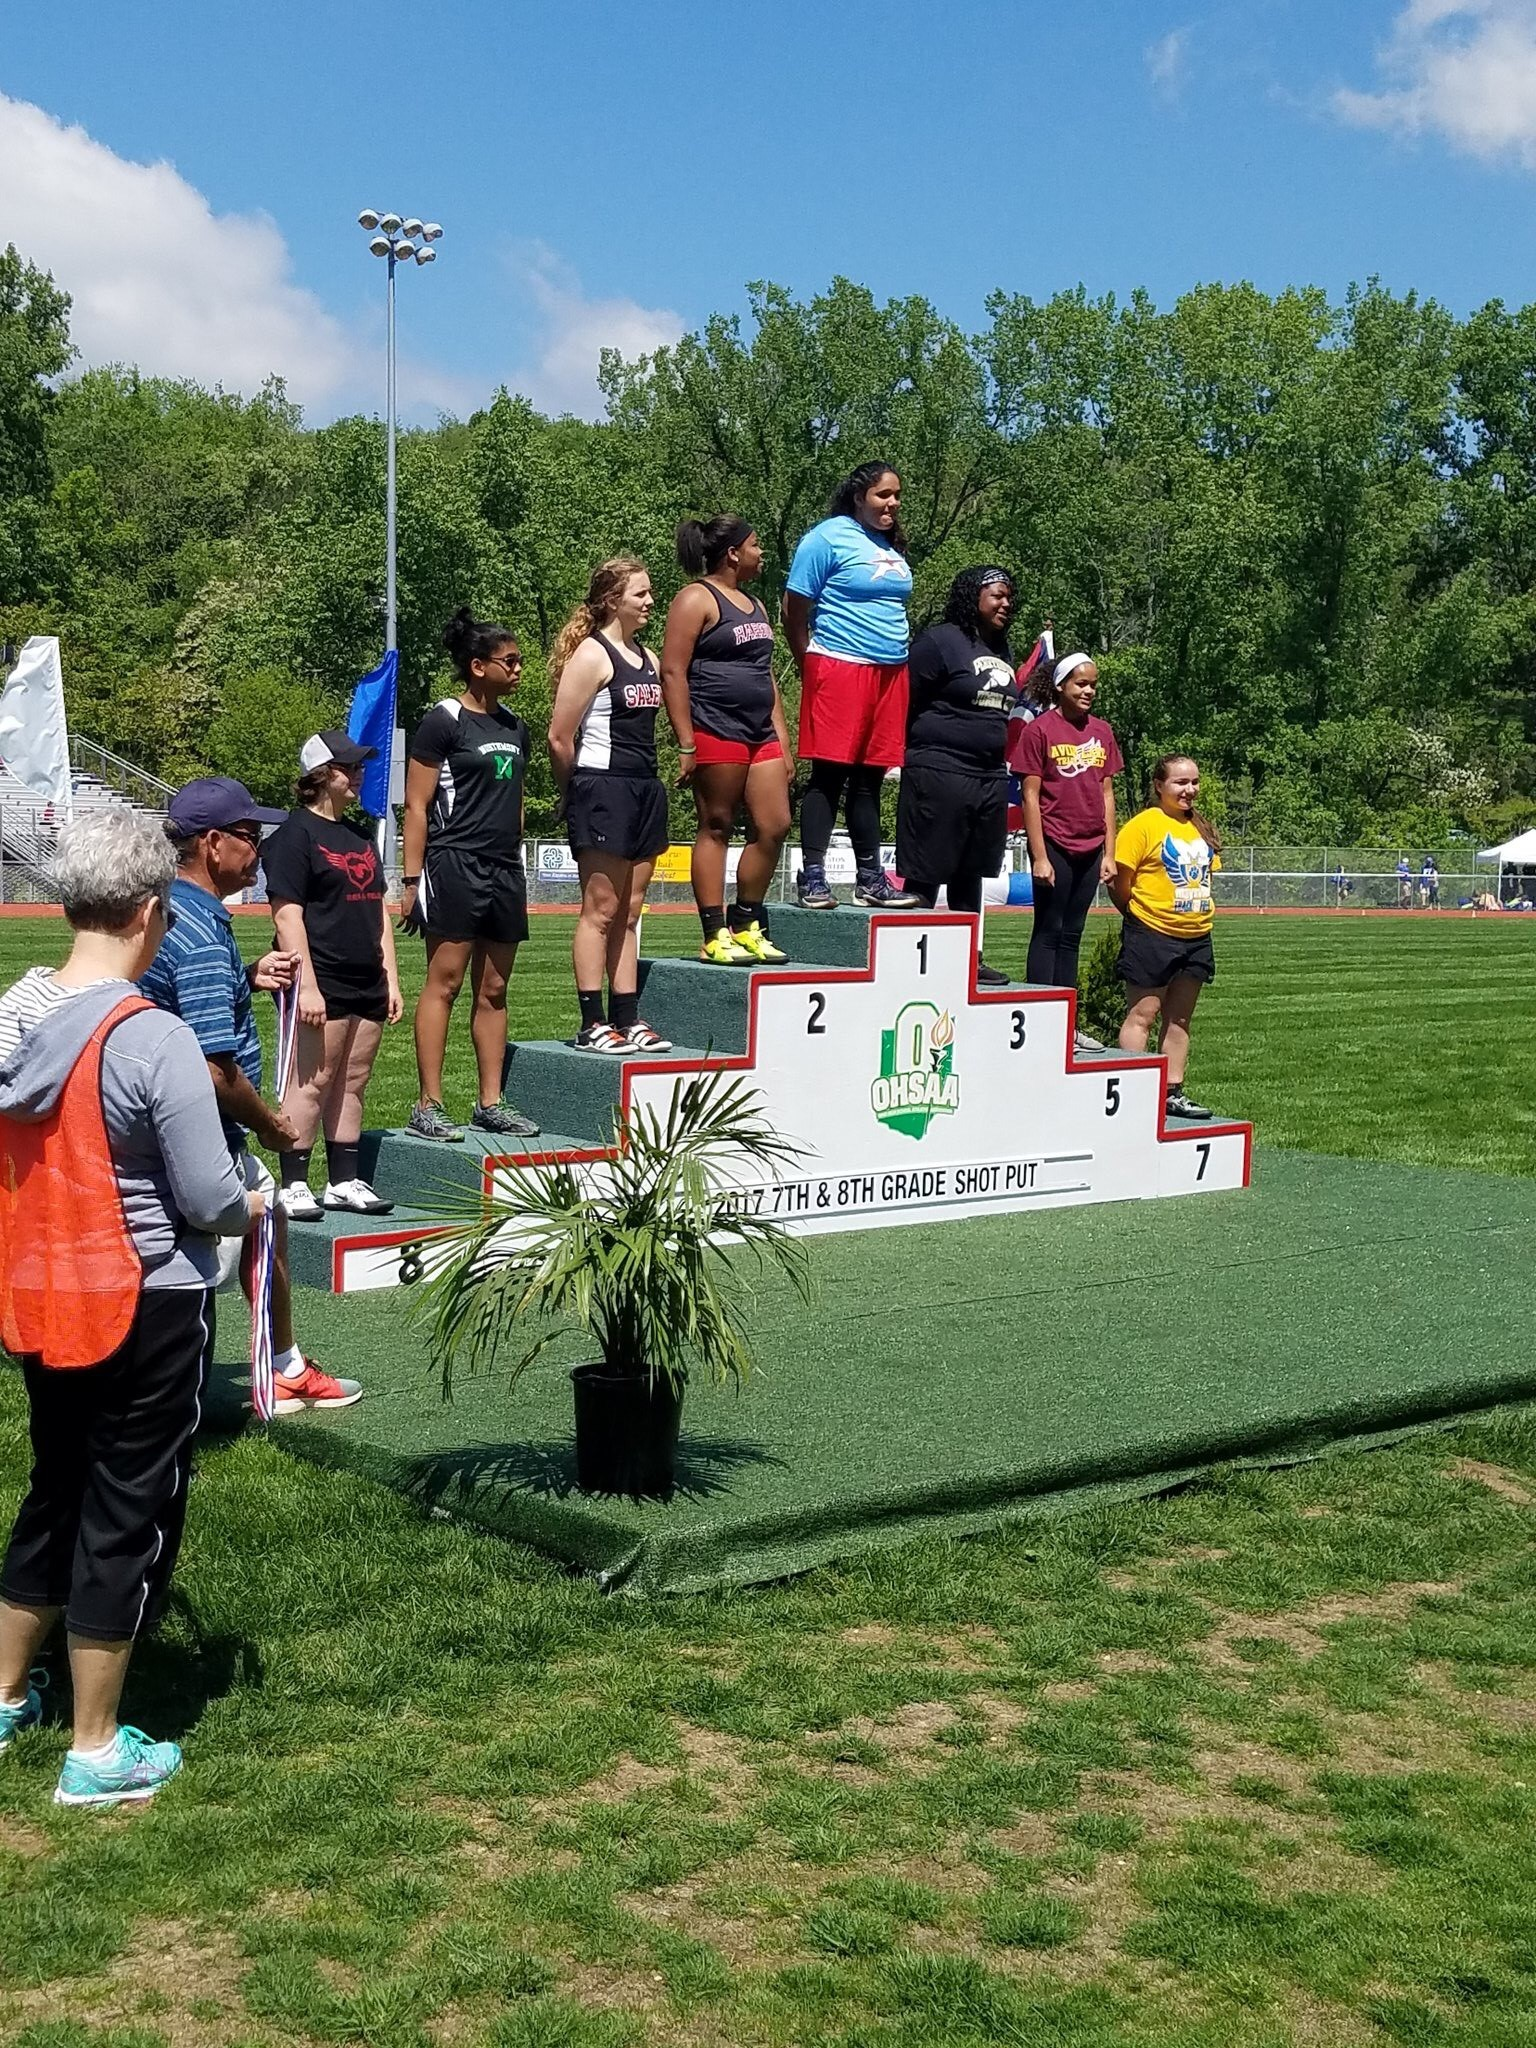 Tajiana Pickett being honored at the Junior High State Track and Field Championships